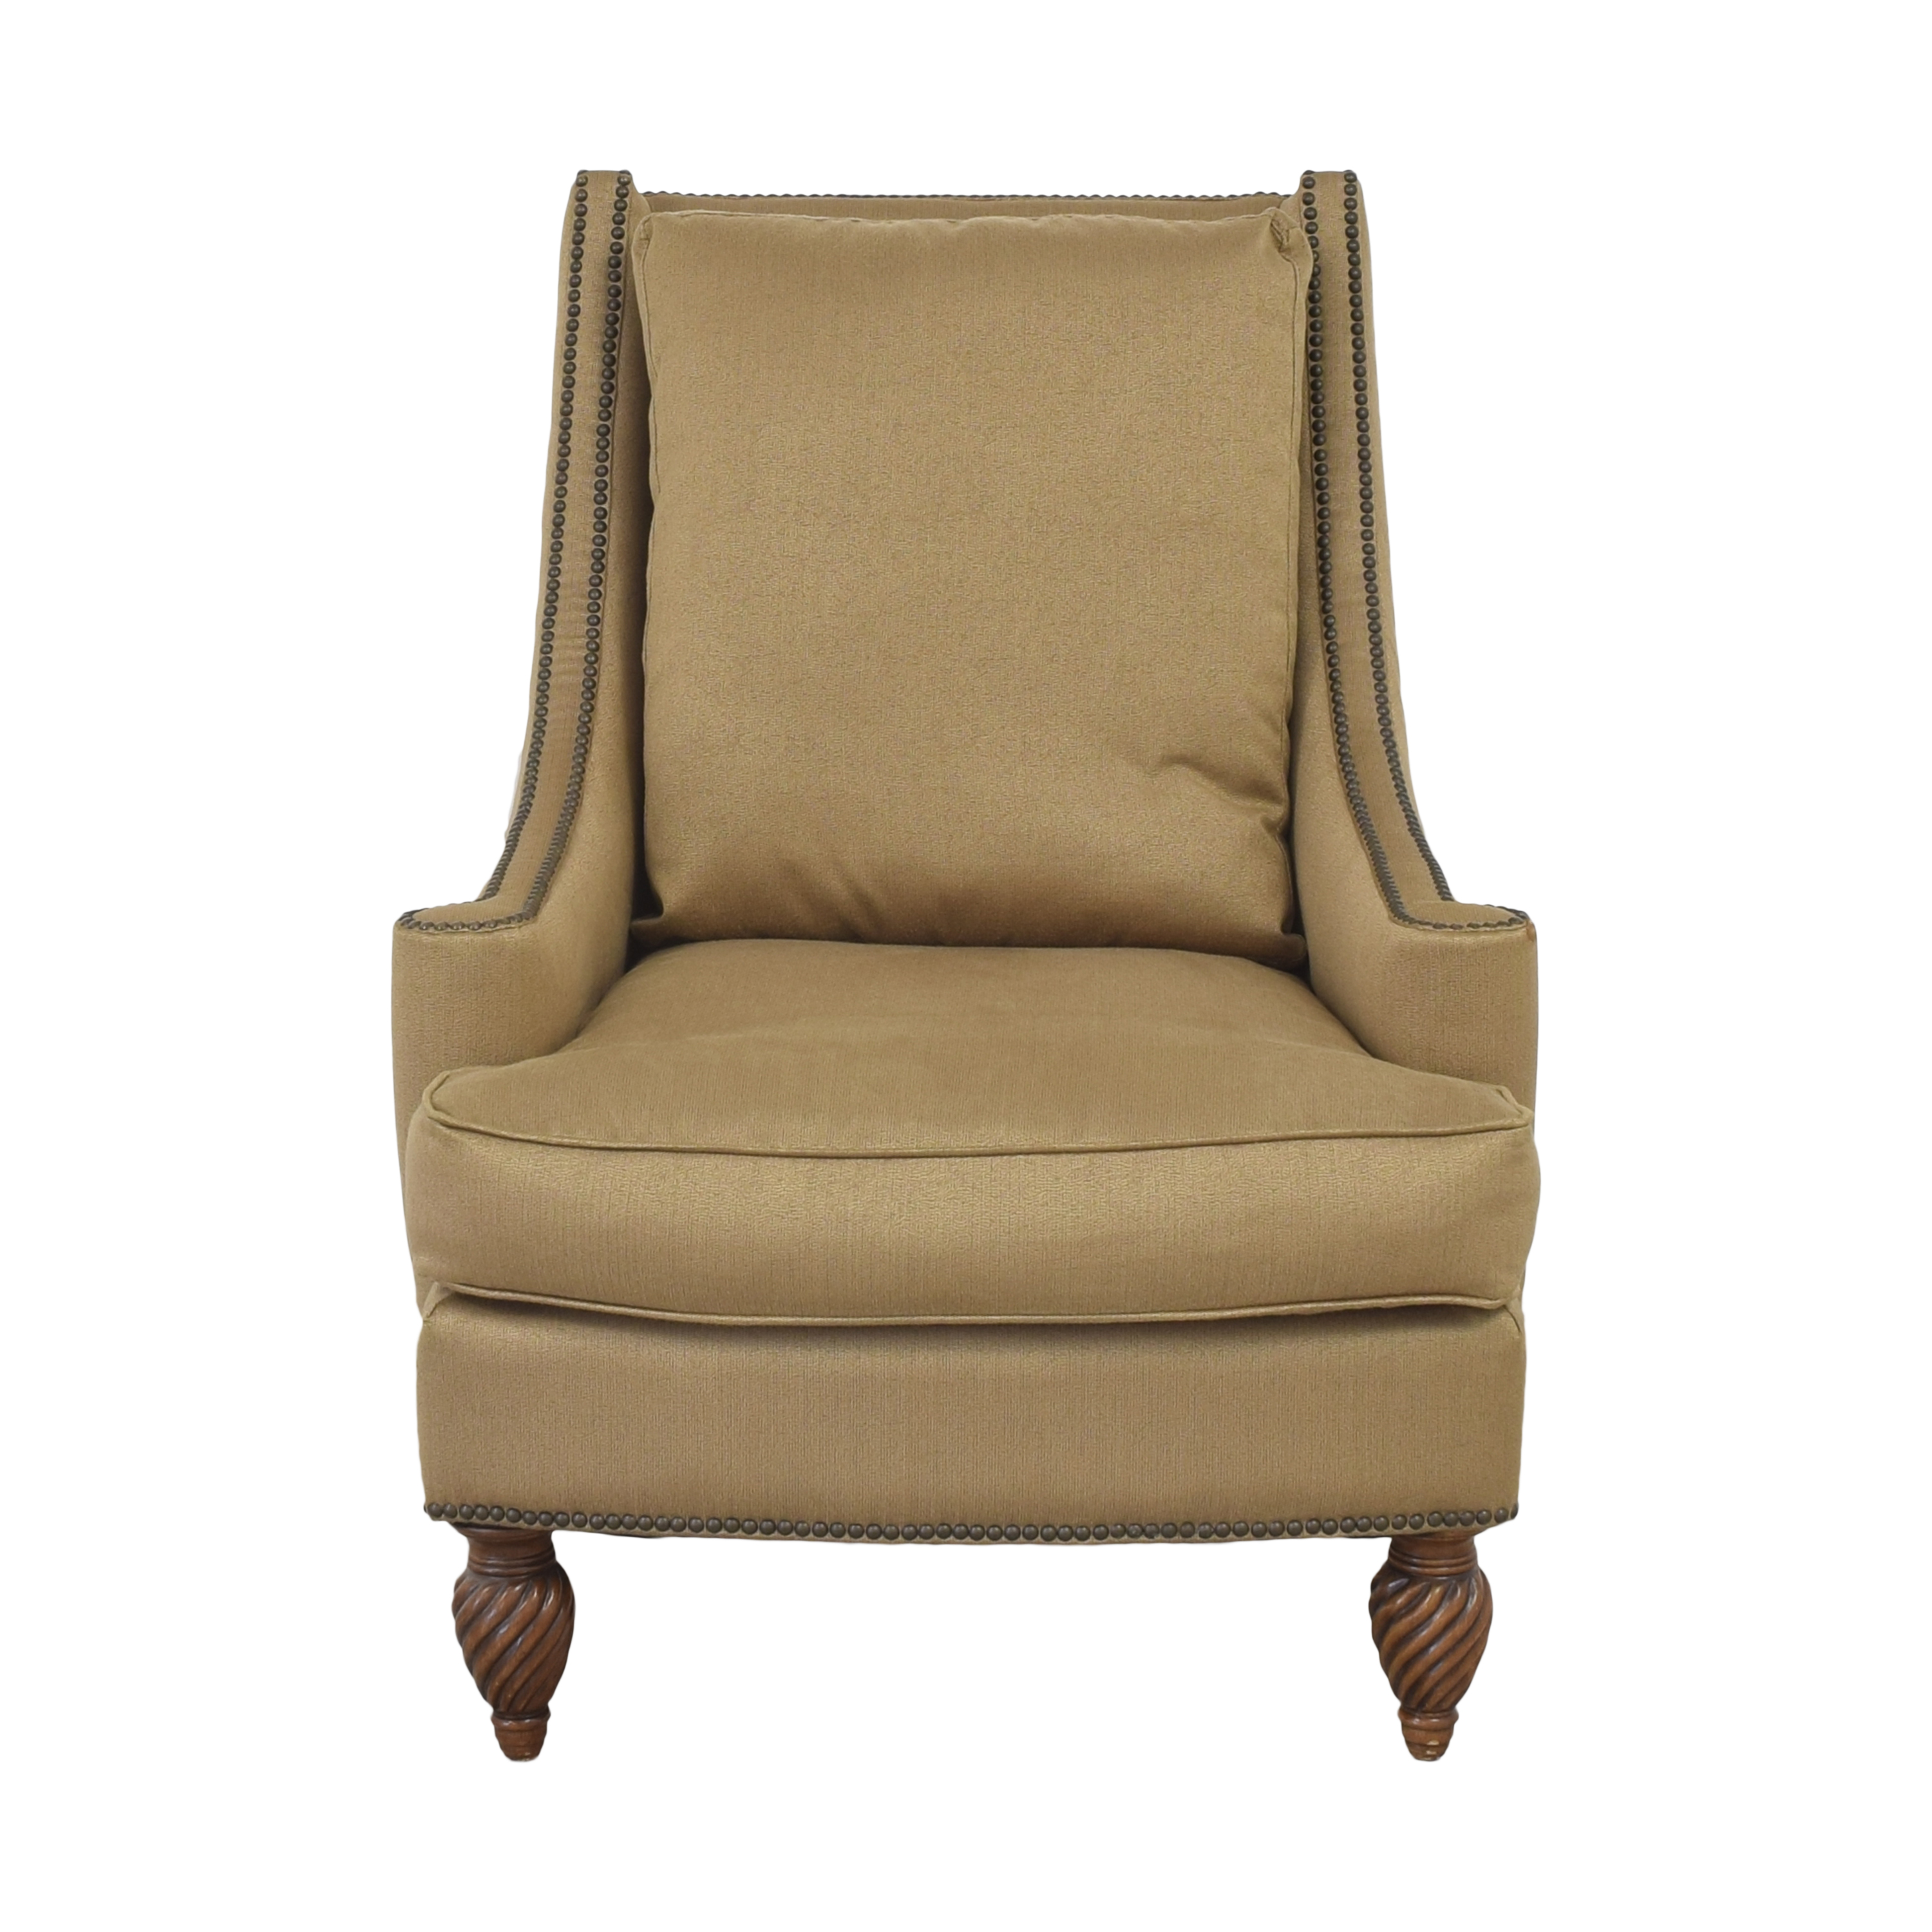 Legacy Classic Furniture Pemberleigh Accent Chair sale